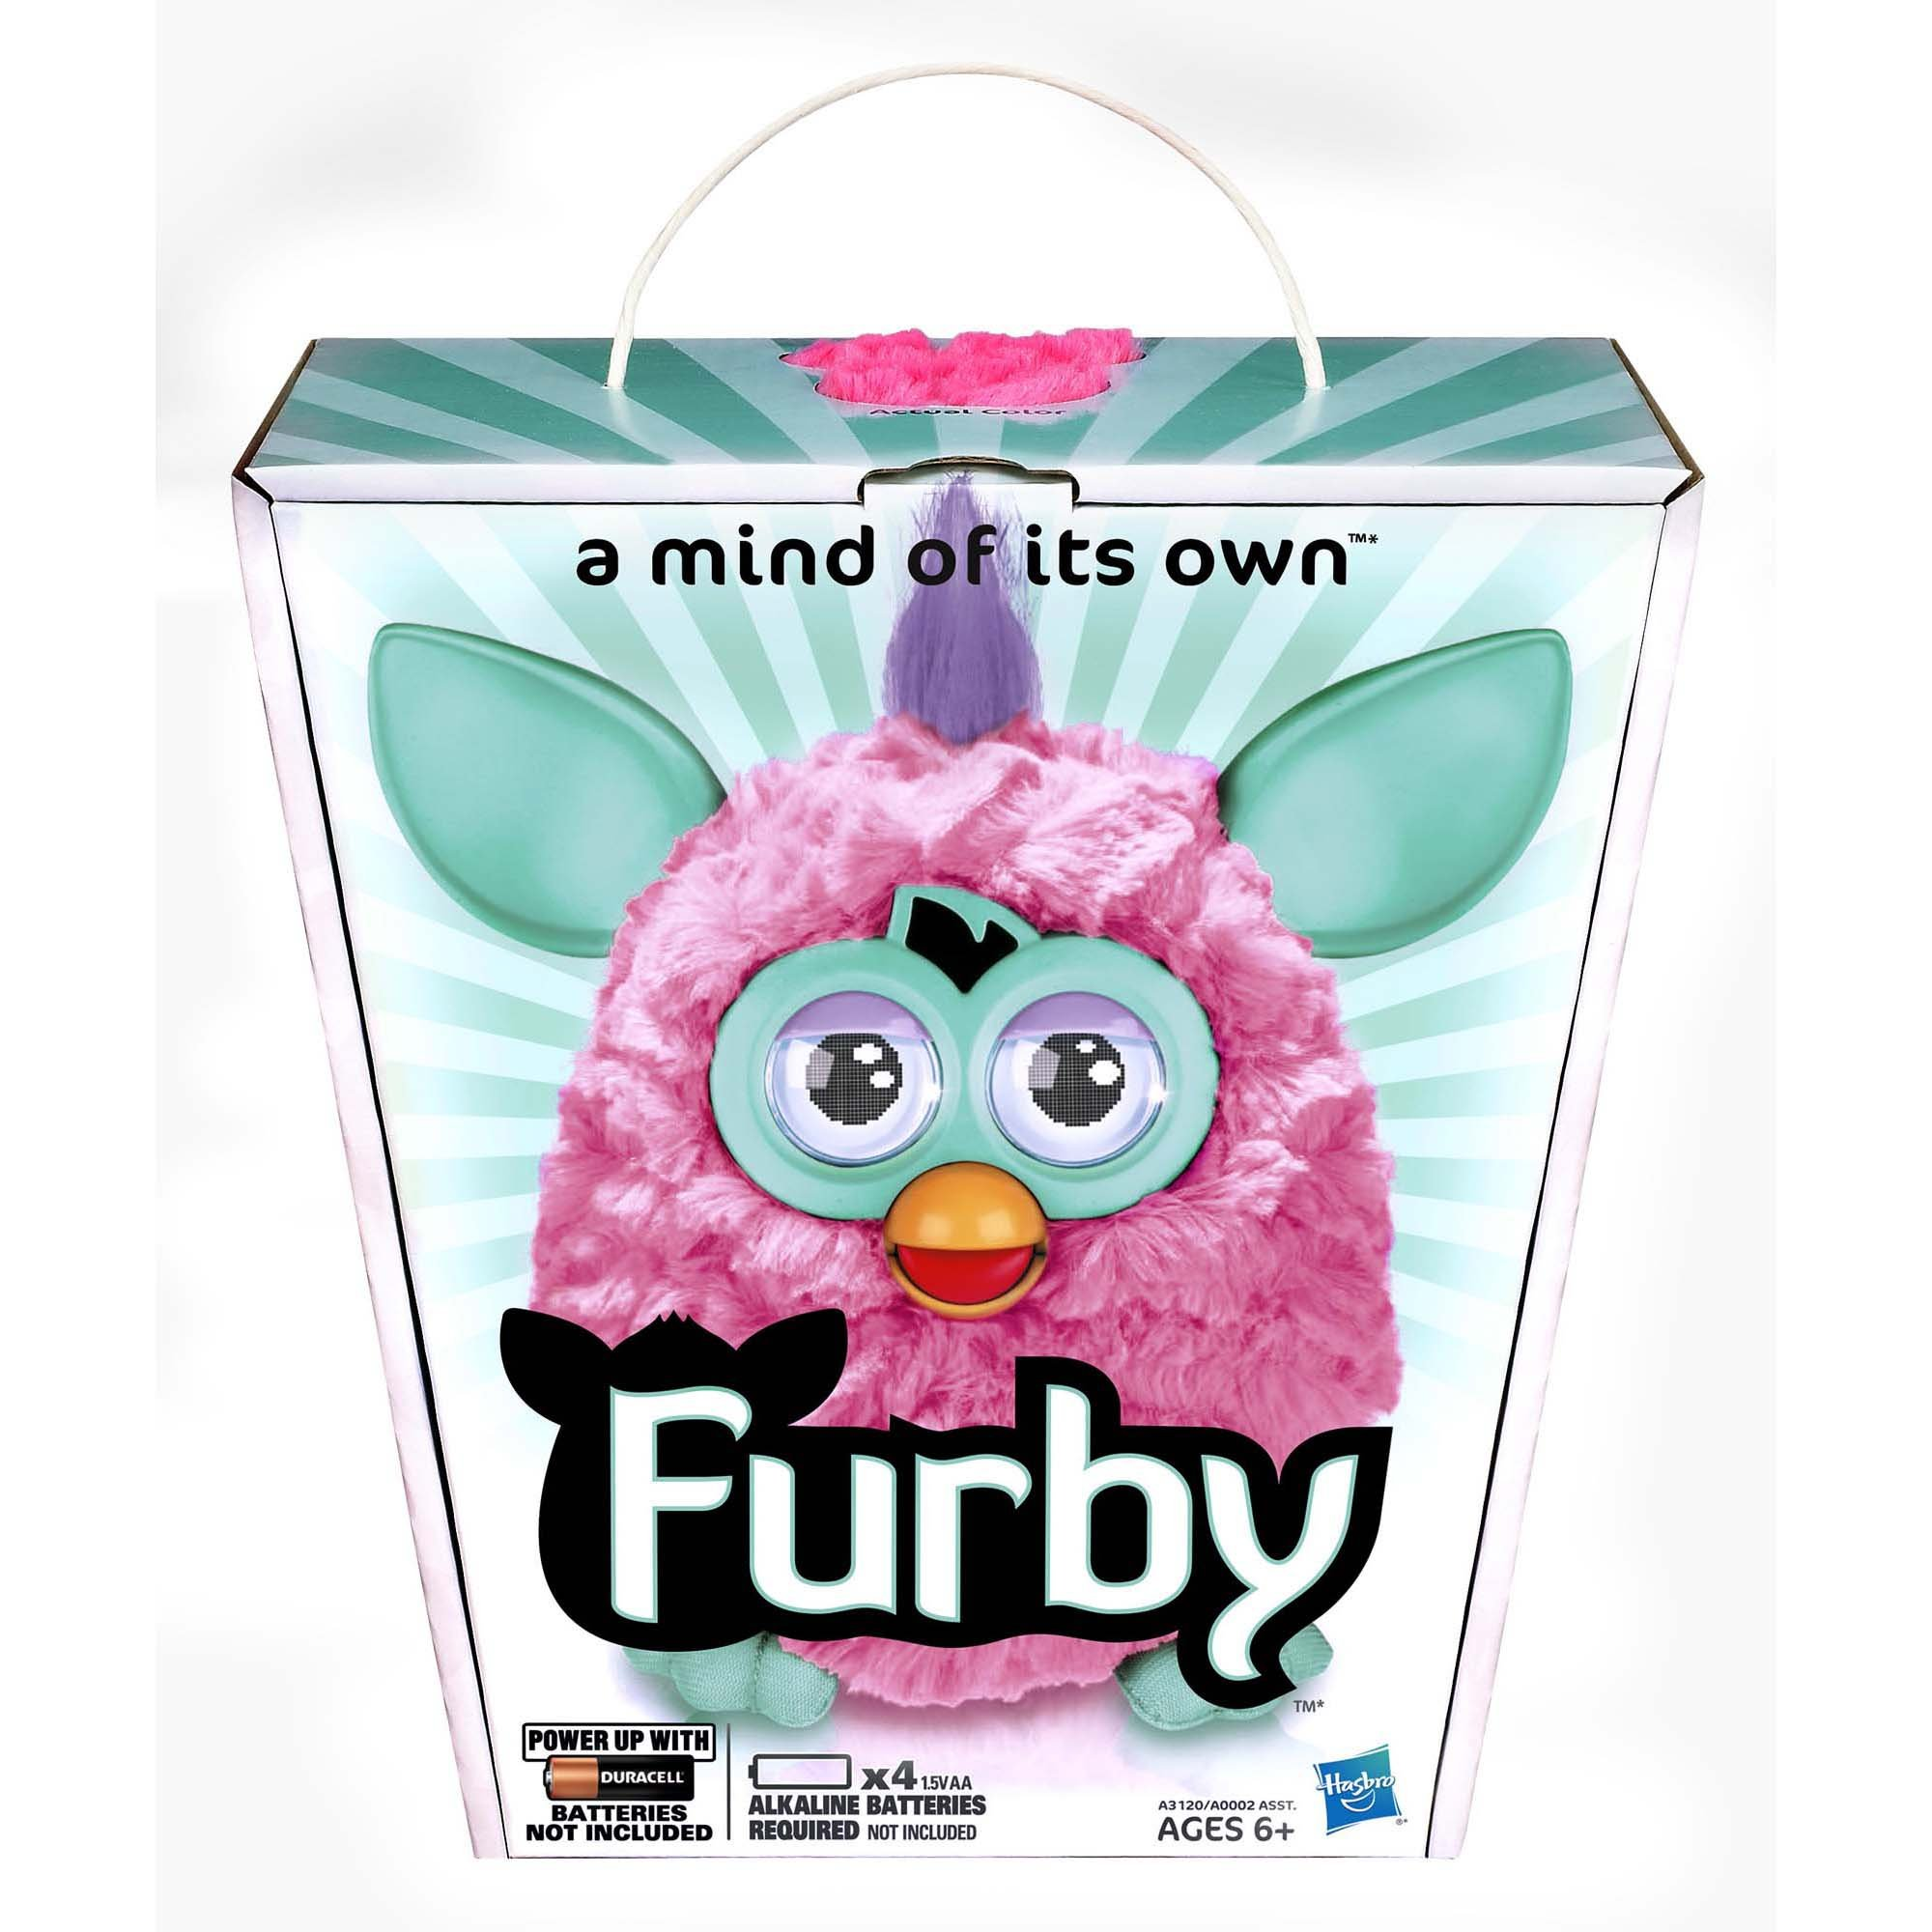 Furby (Pink/Teal) by Furby (Image #16)